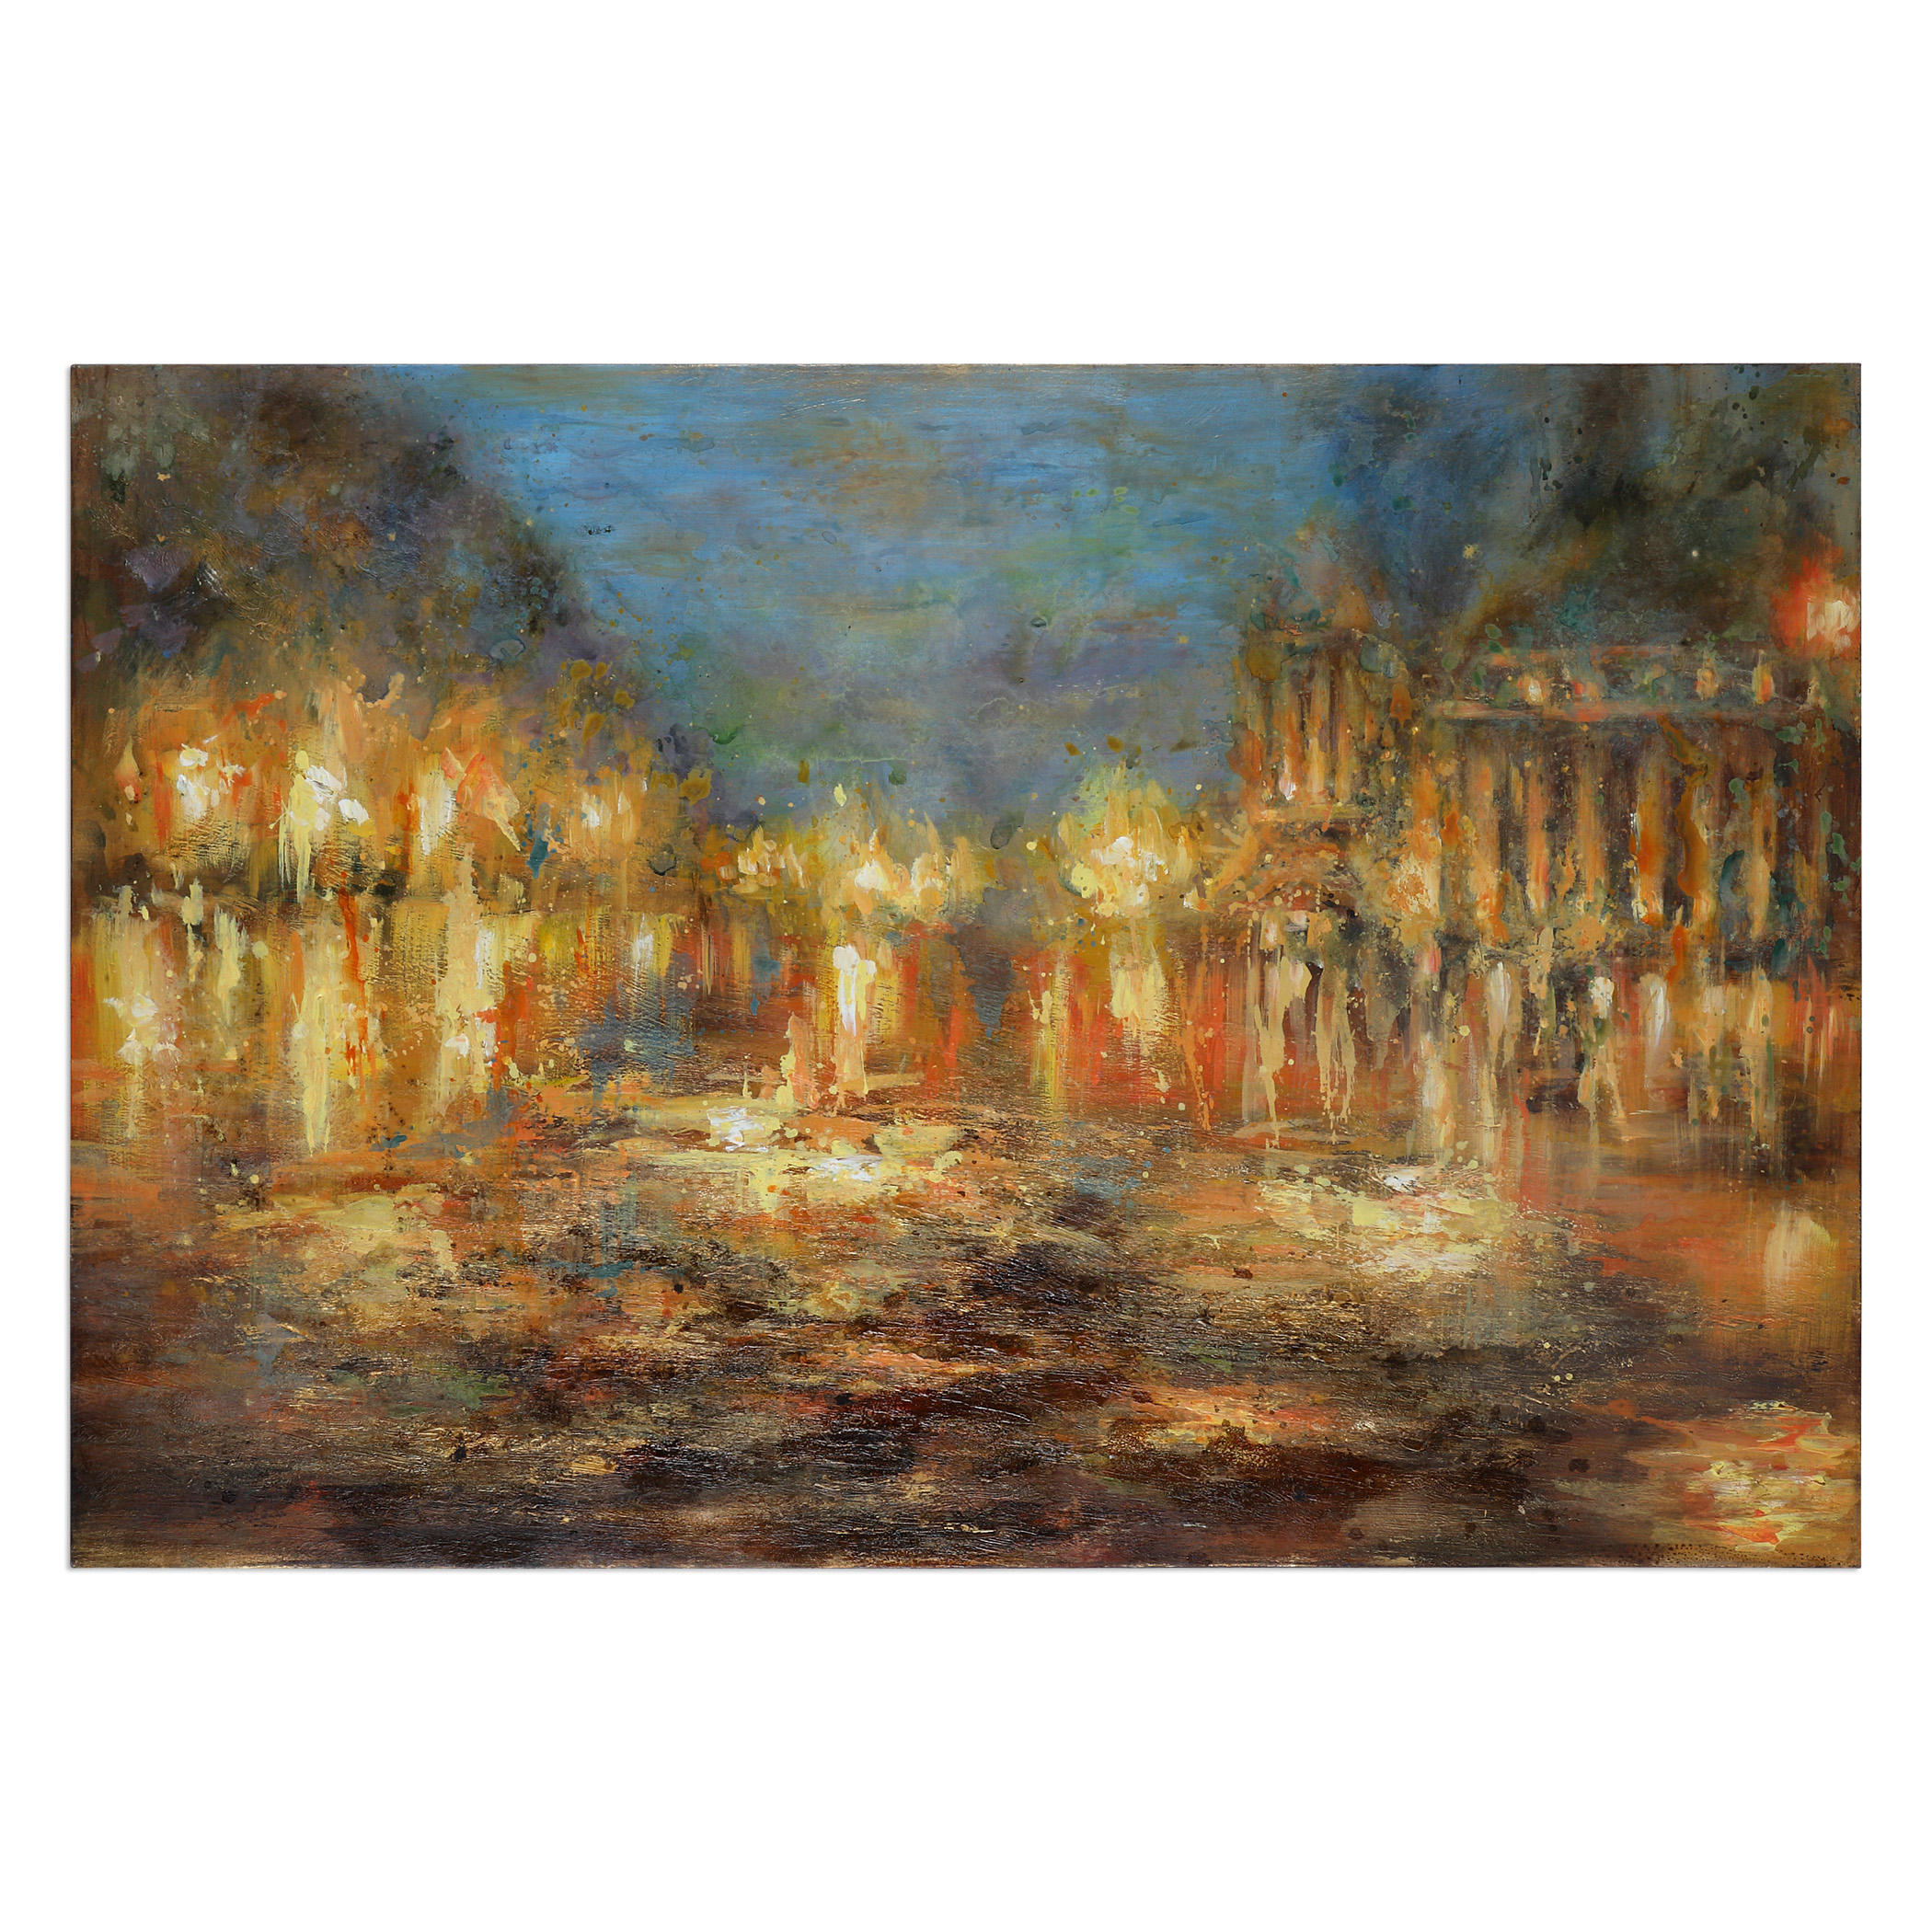 Uttermost Art Lights Of The City Abstract Art - Item Number: 31316